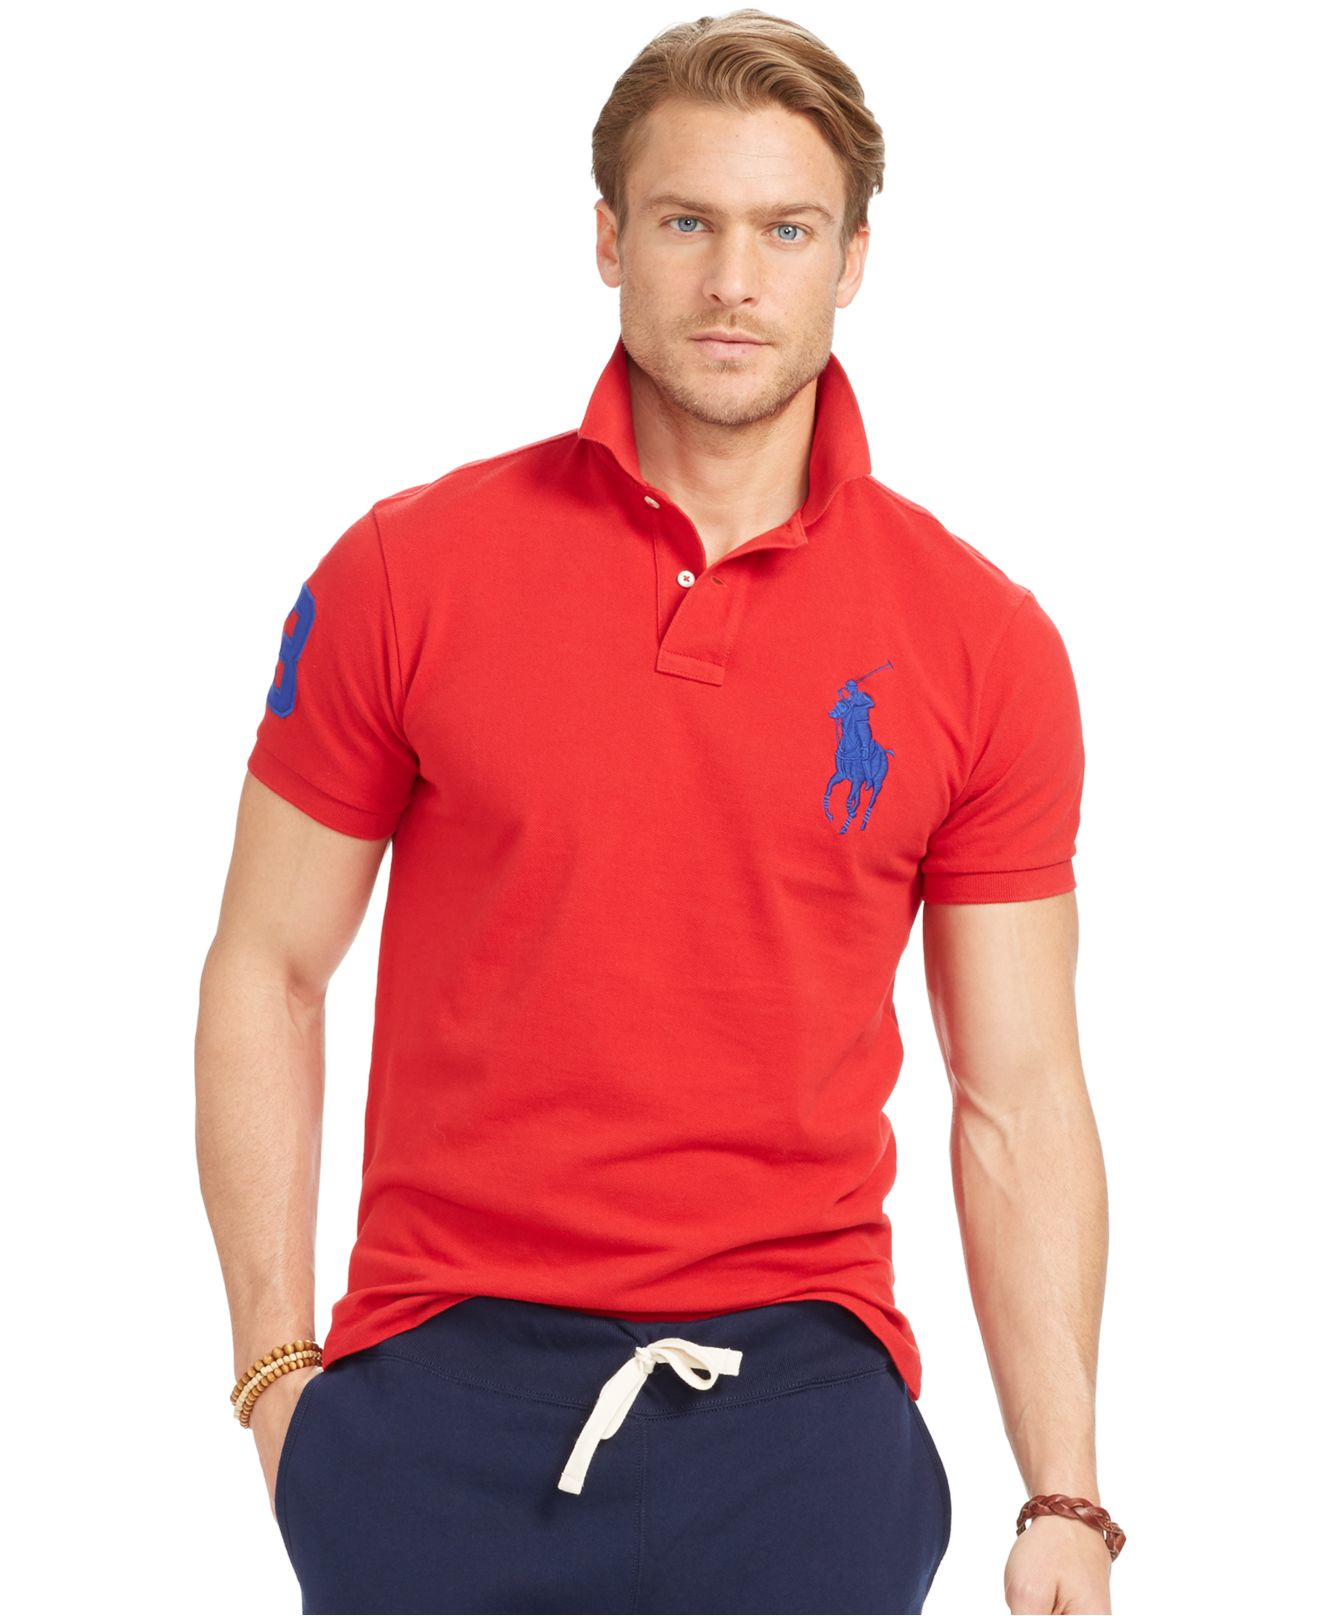 Polo ralph lauren men 39 s custom fit big pony mesh polo Man in polo shirt